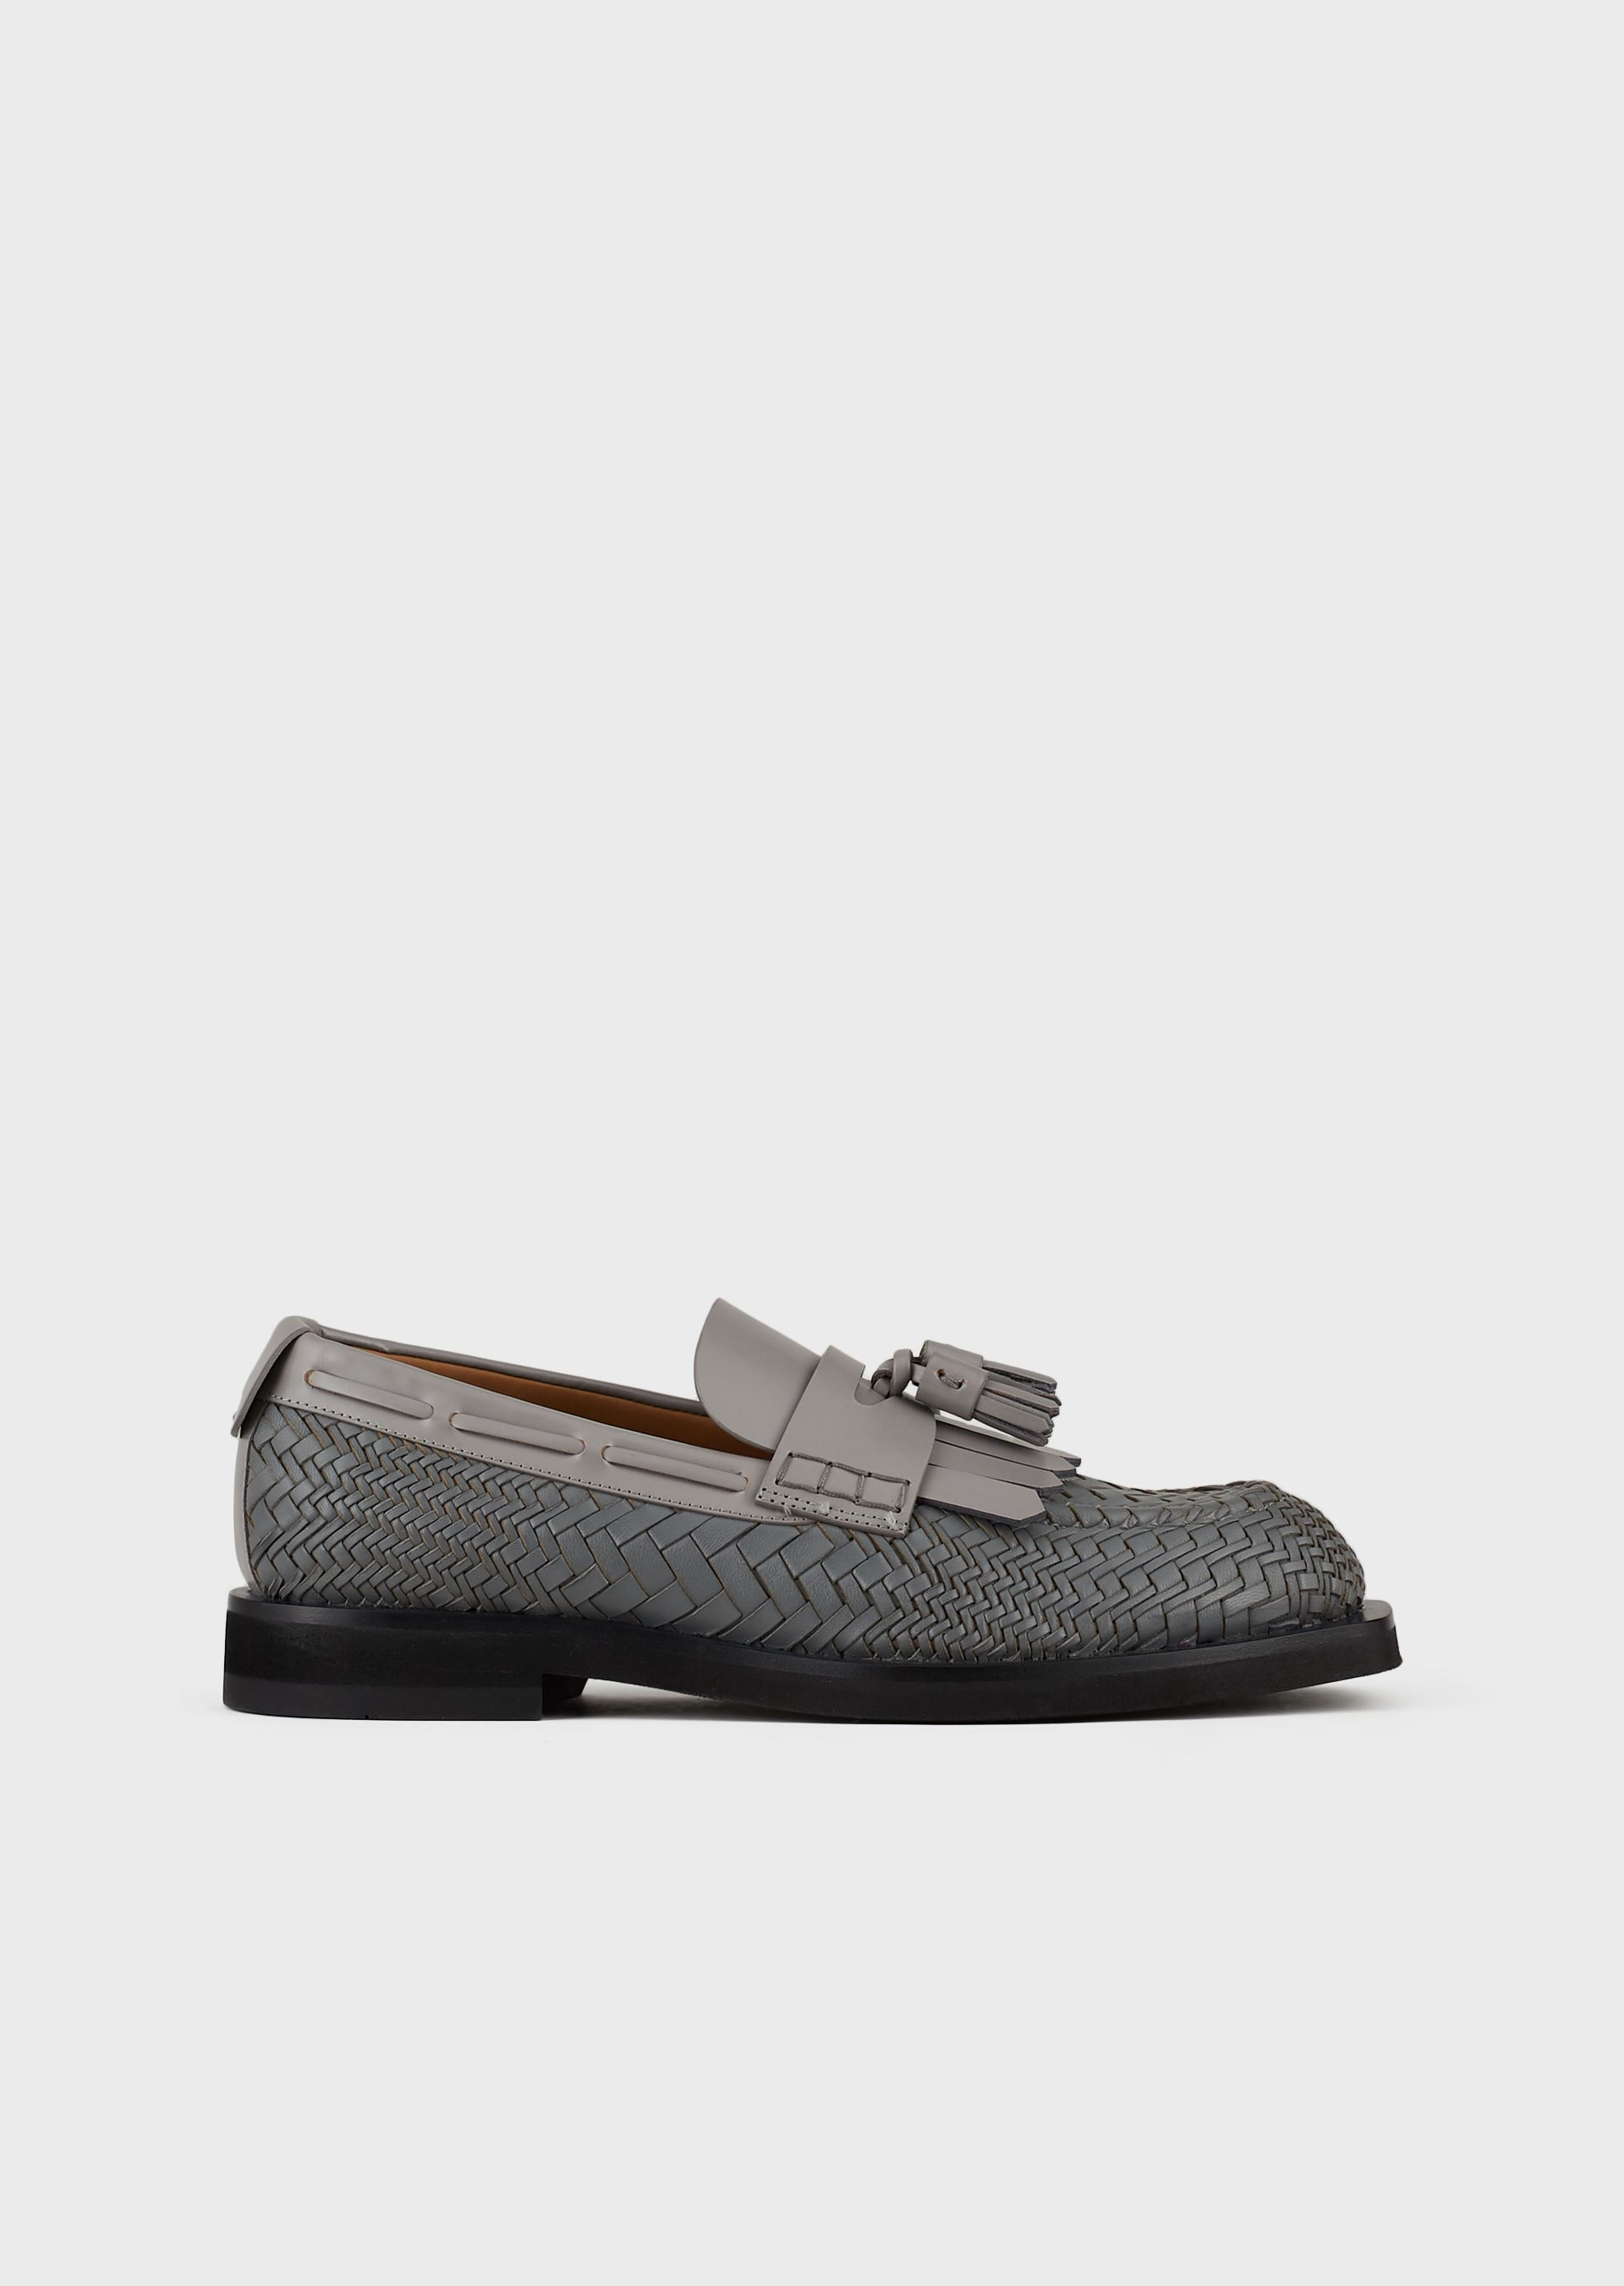 EMPORIO ARMANI Woven leather loafers with tassels